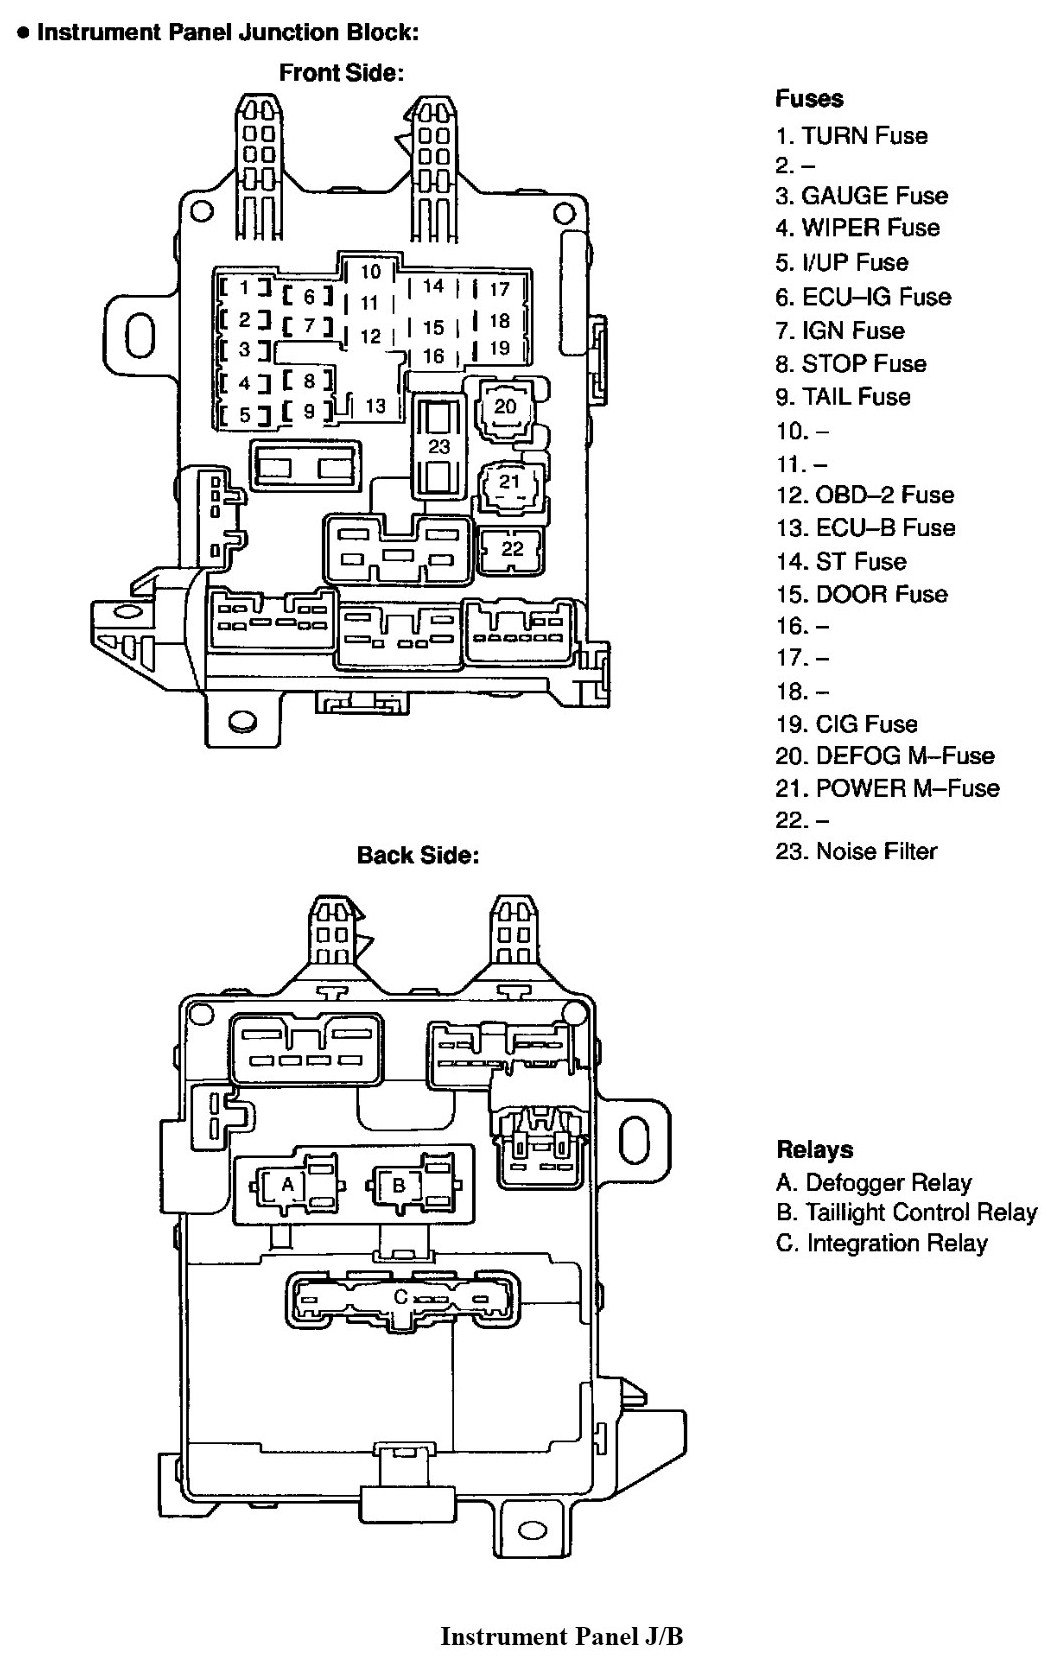 2010 Toyota Corolla Fuse Panel Diagram Good 1st Wiring 2001 Camry Blower Third Level Rh 9 15 Jacobwinterstein Com